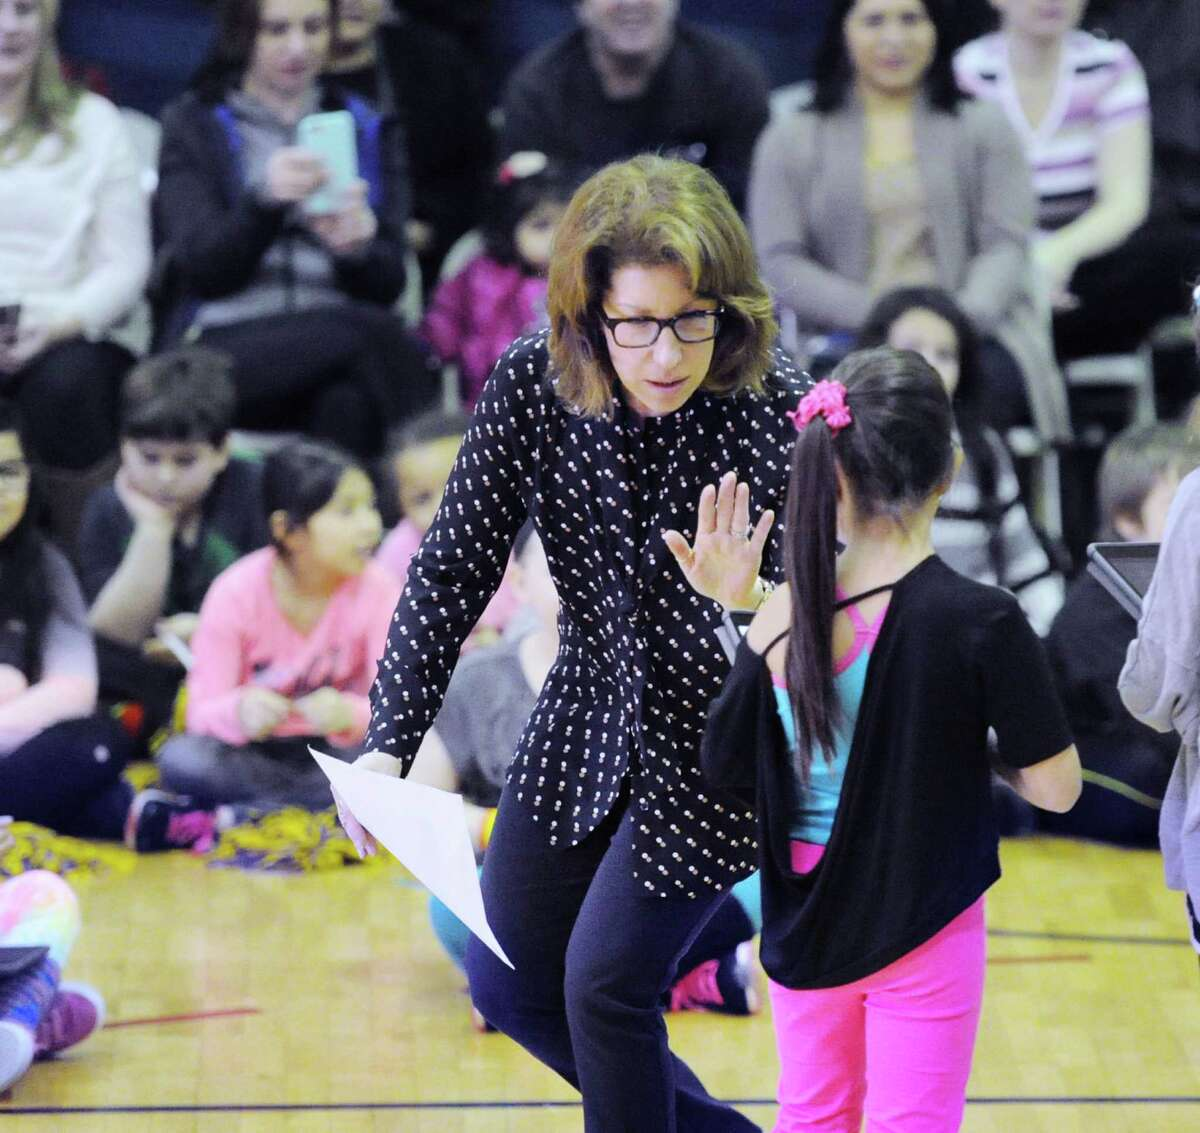 New Lebanon School music teacher Audrey Maurer received a Cyber Songstress award during the celebratory performance to showcase what third-graders have learned through the district's digital learning program in the gymnasium at the school in the Byram section of Greenwich, Conn., Friday, Feb. 26, 2016.